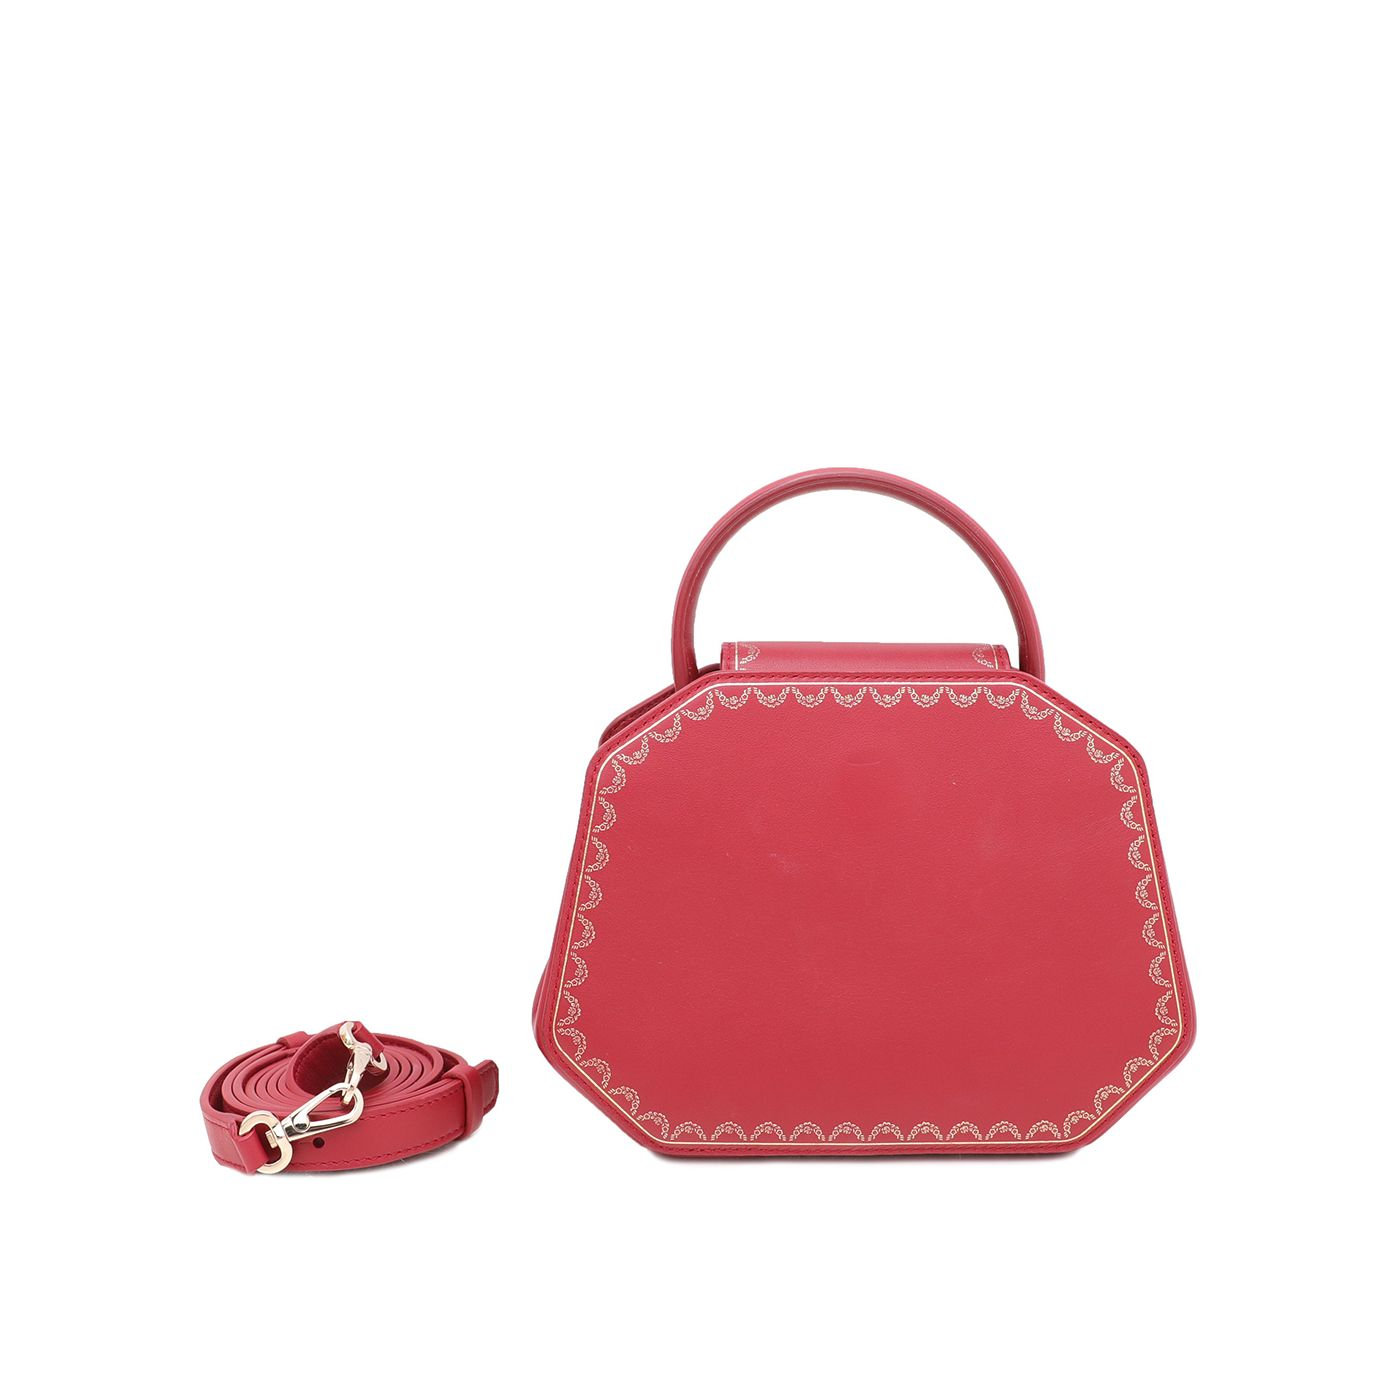 Cartier Red Guirlande De Cartier Mini Bag